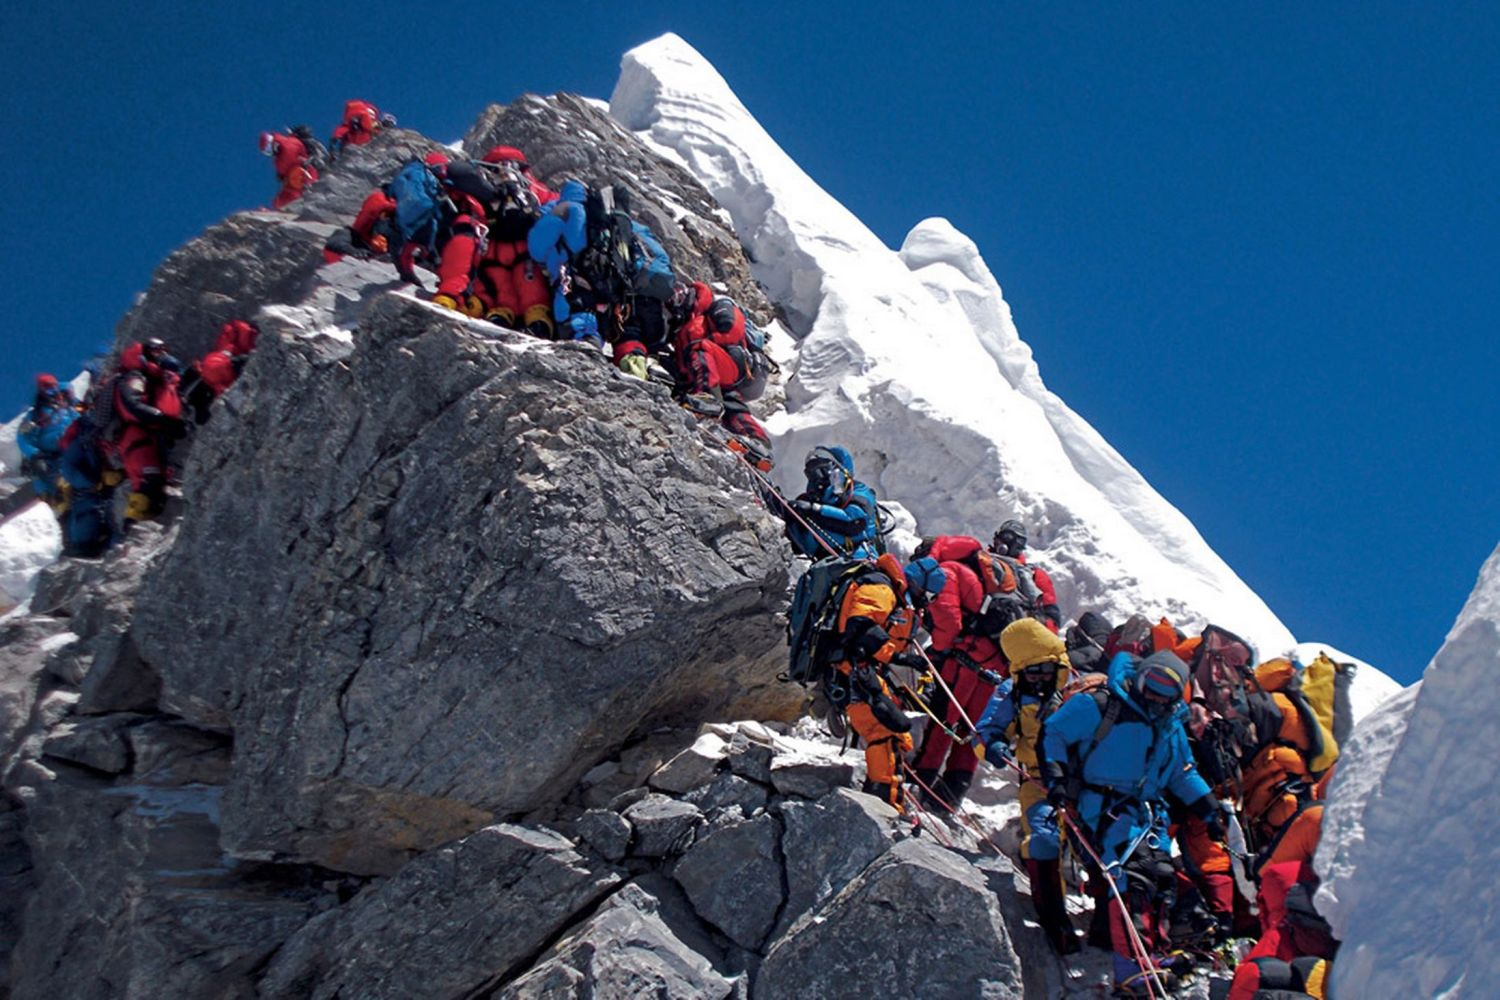 The Bodies Of Dead Climbers On Everest Are Serving As Guideposts